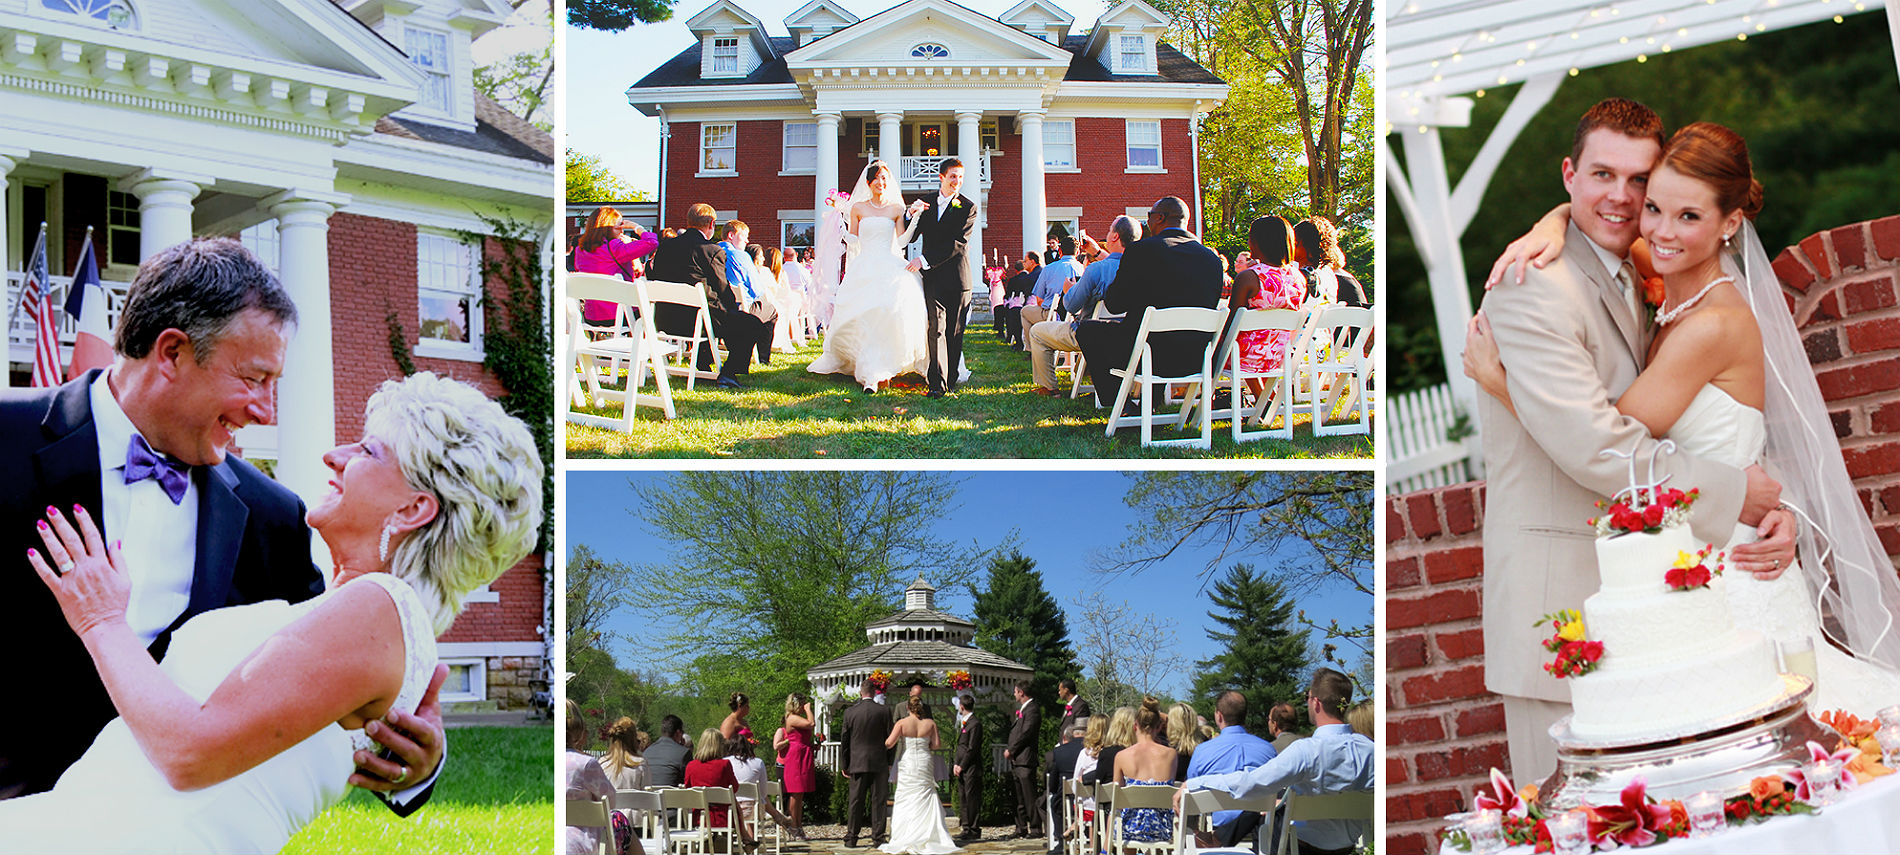 Montage of various wedding scenes